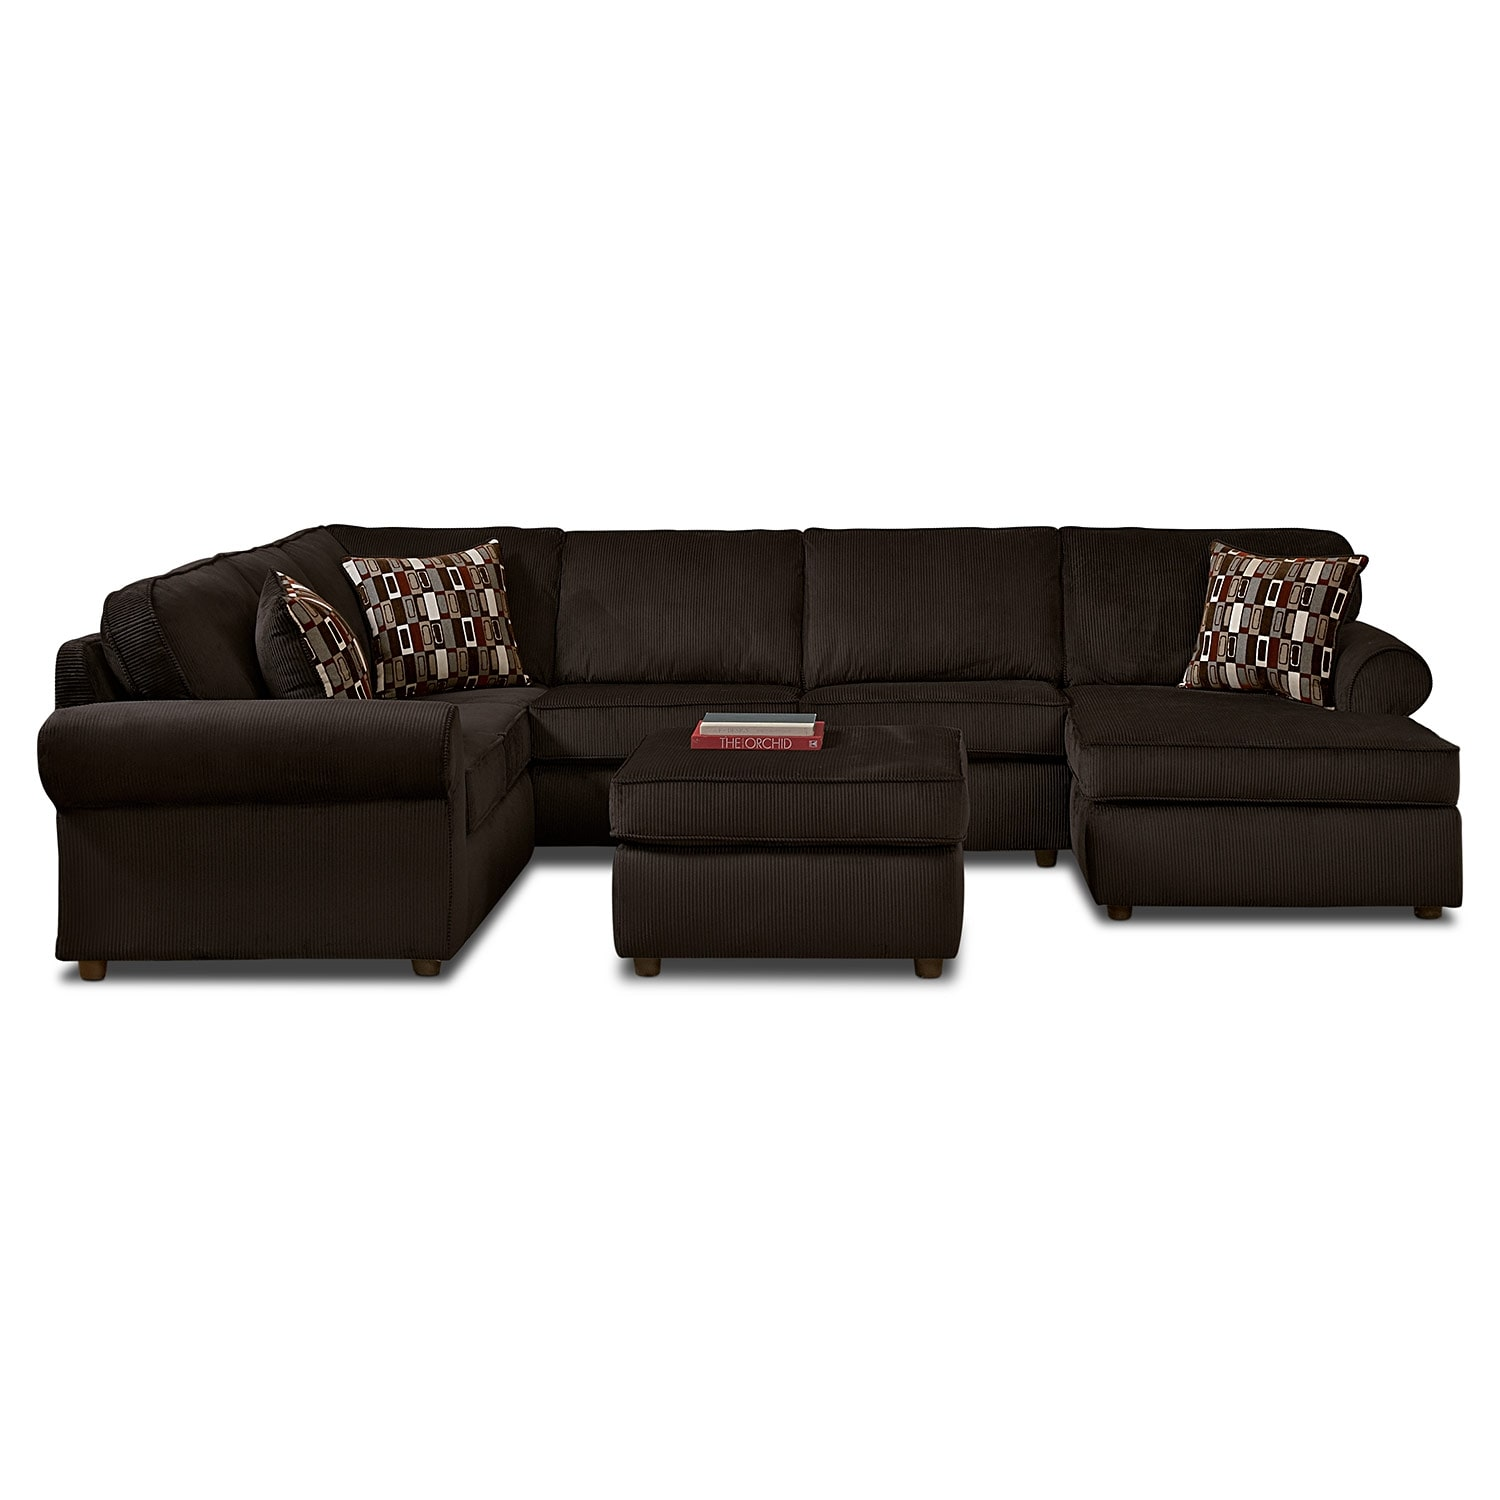 Living Room Furniture - Monarch 3 Pc. Sectional and Cocktail Ottoman